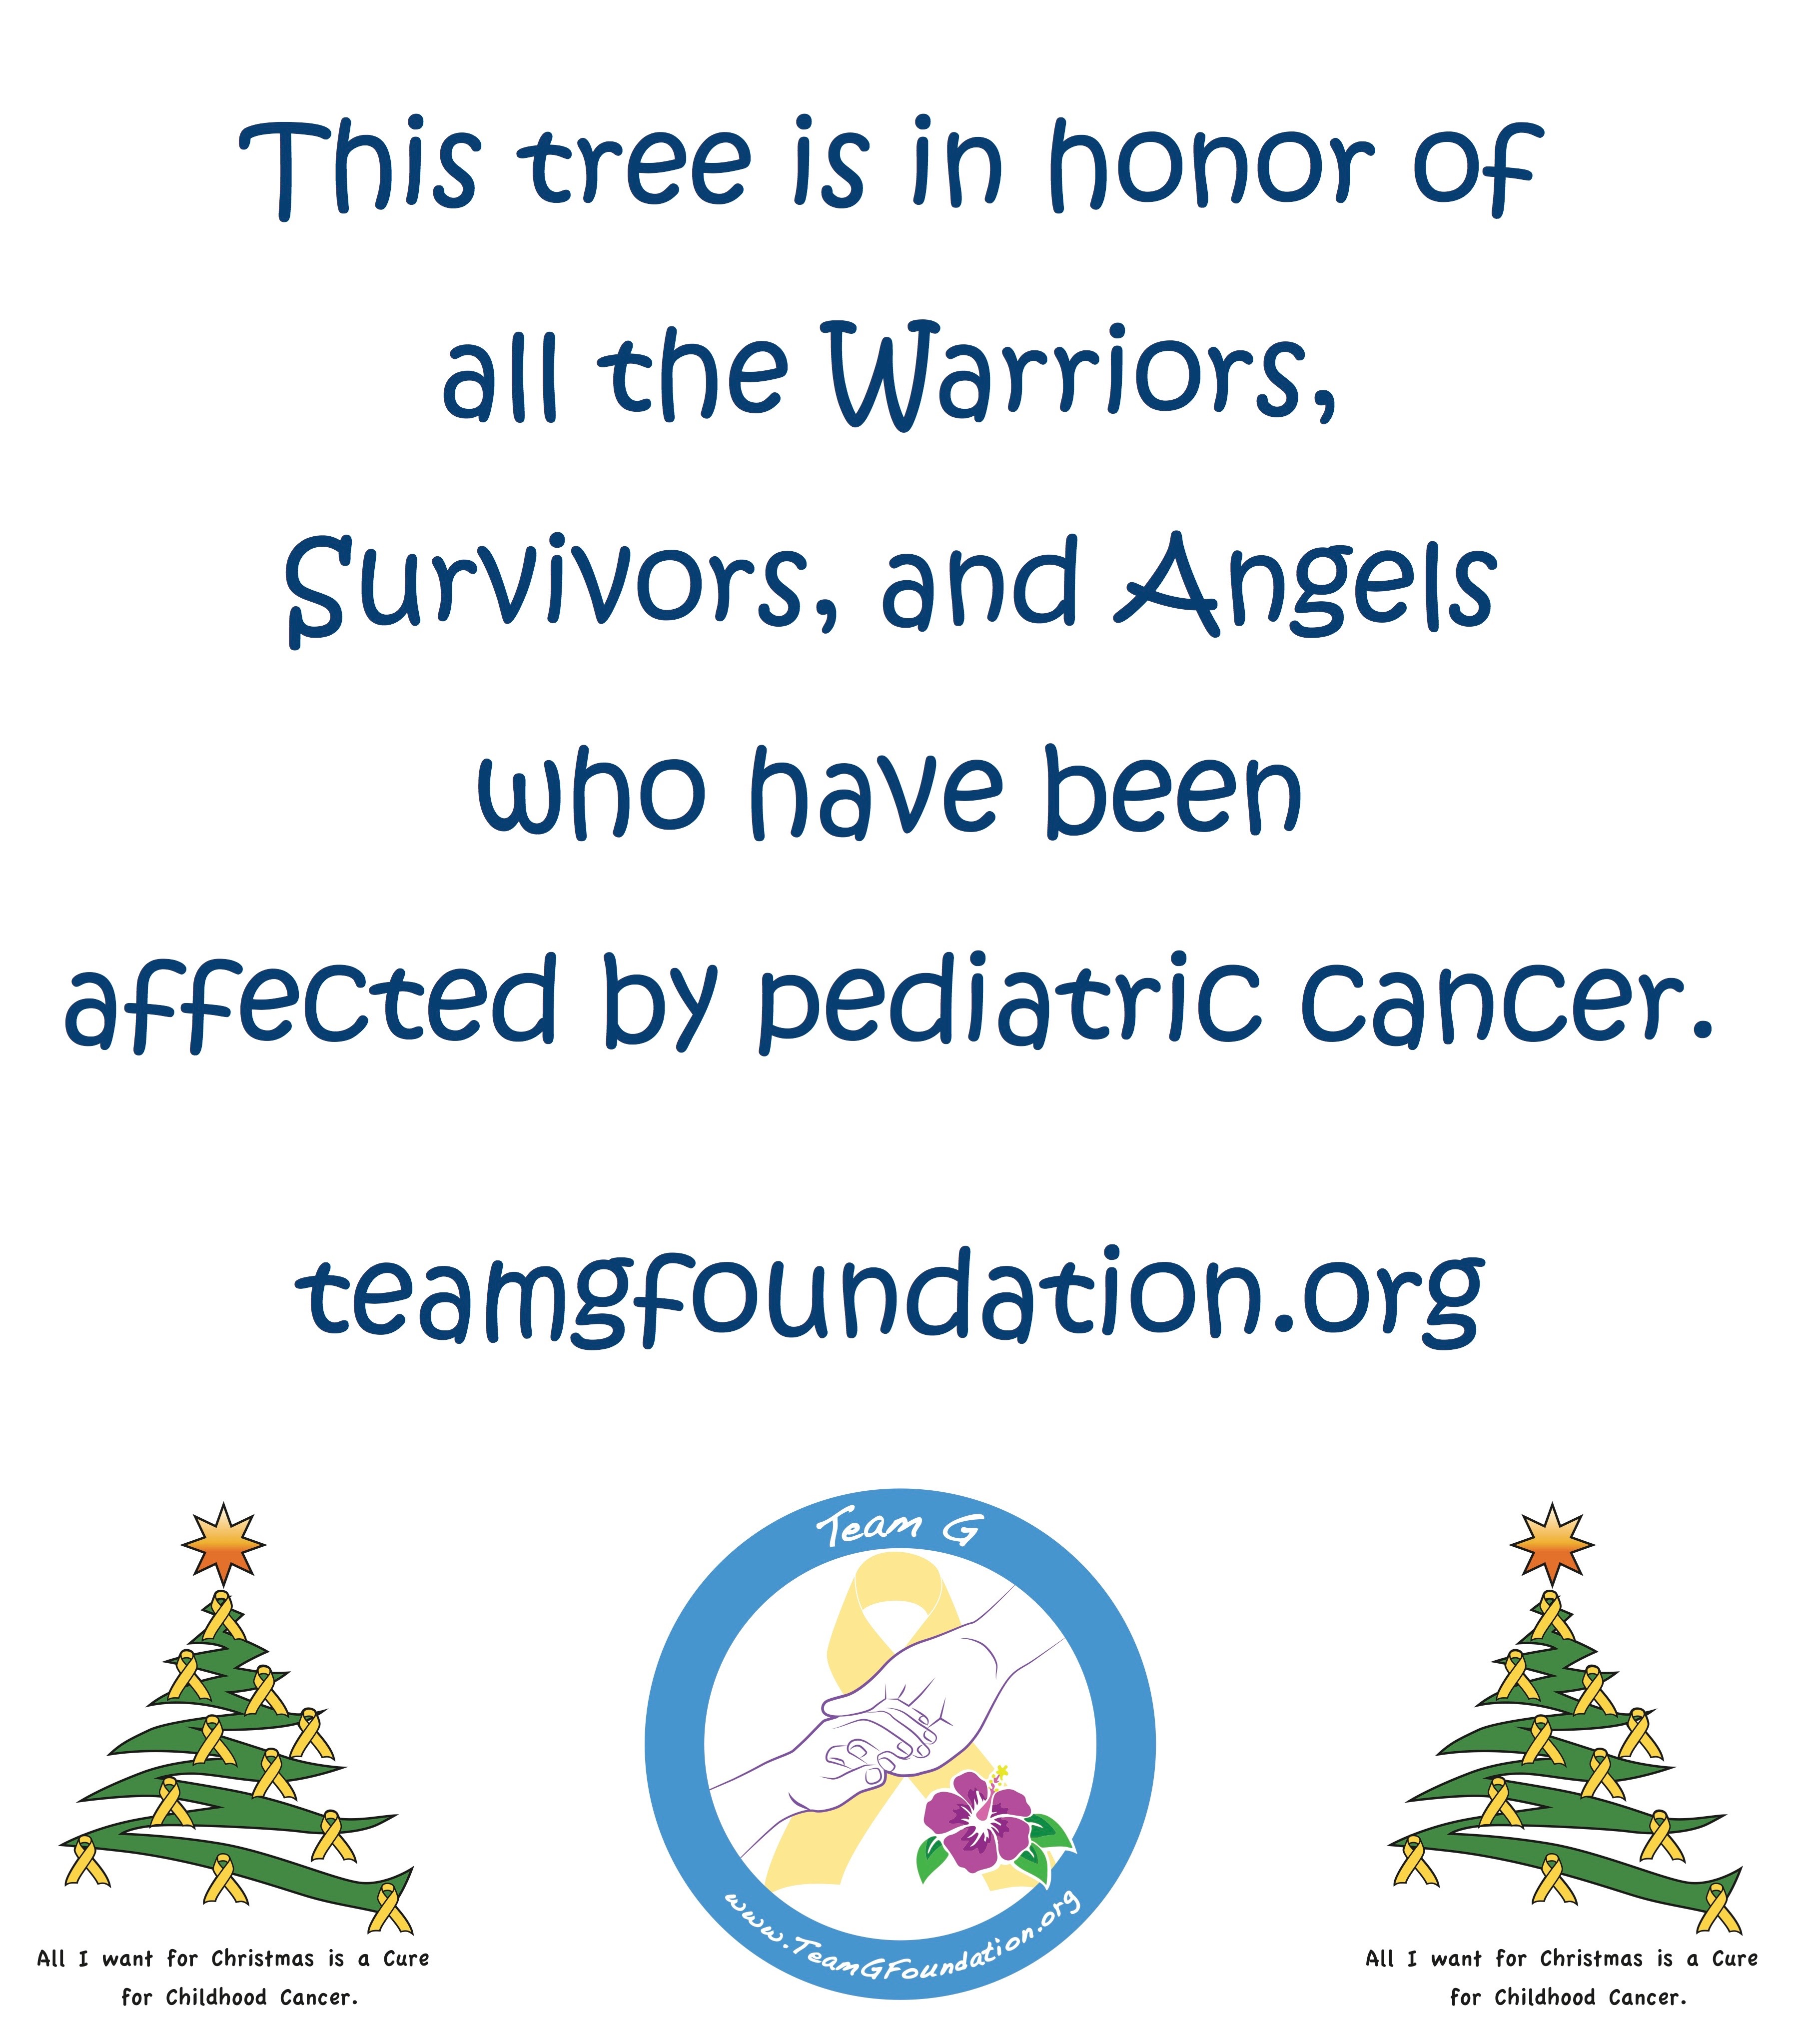 Tree of Honor Form | Team G Childhood Cancer Foundation